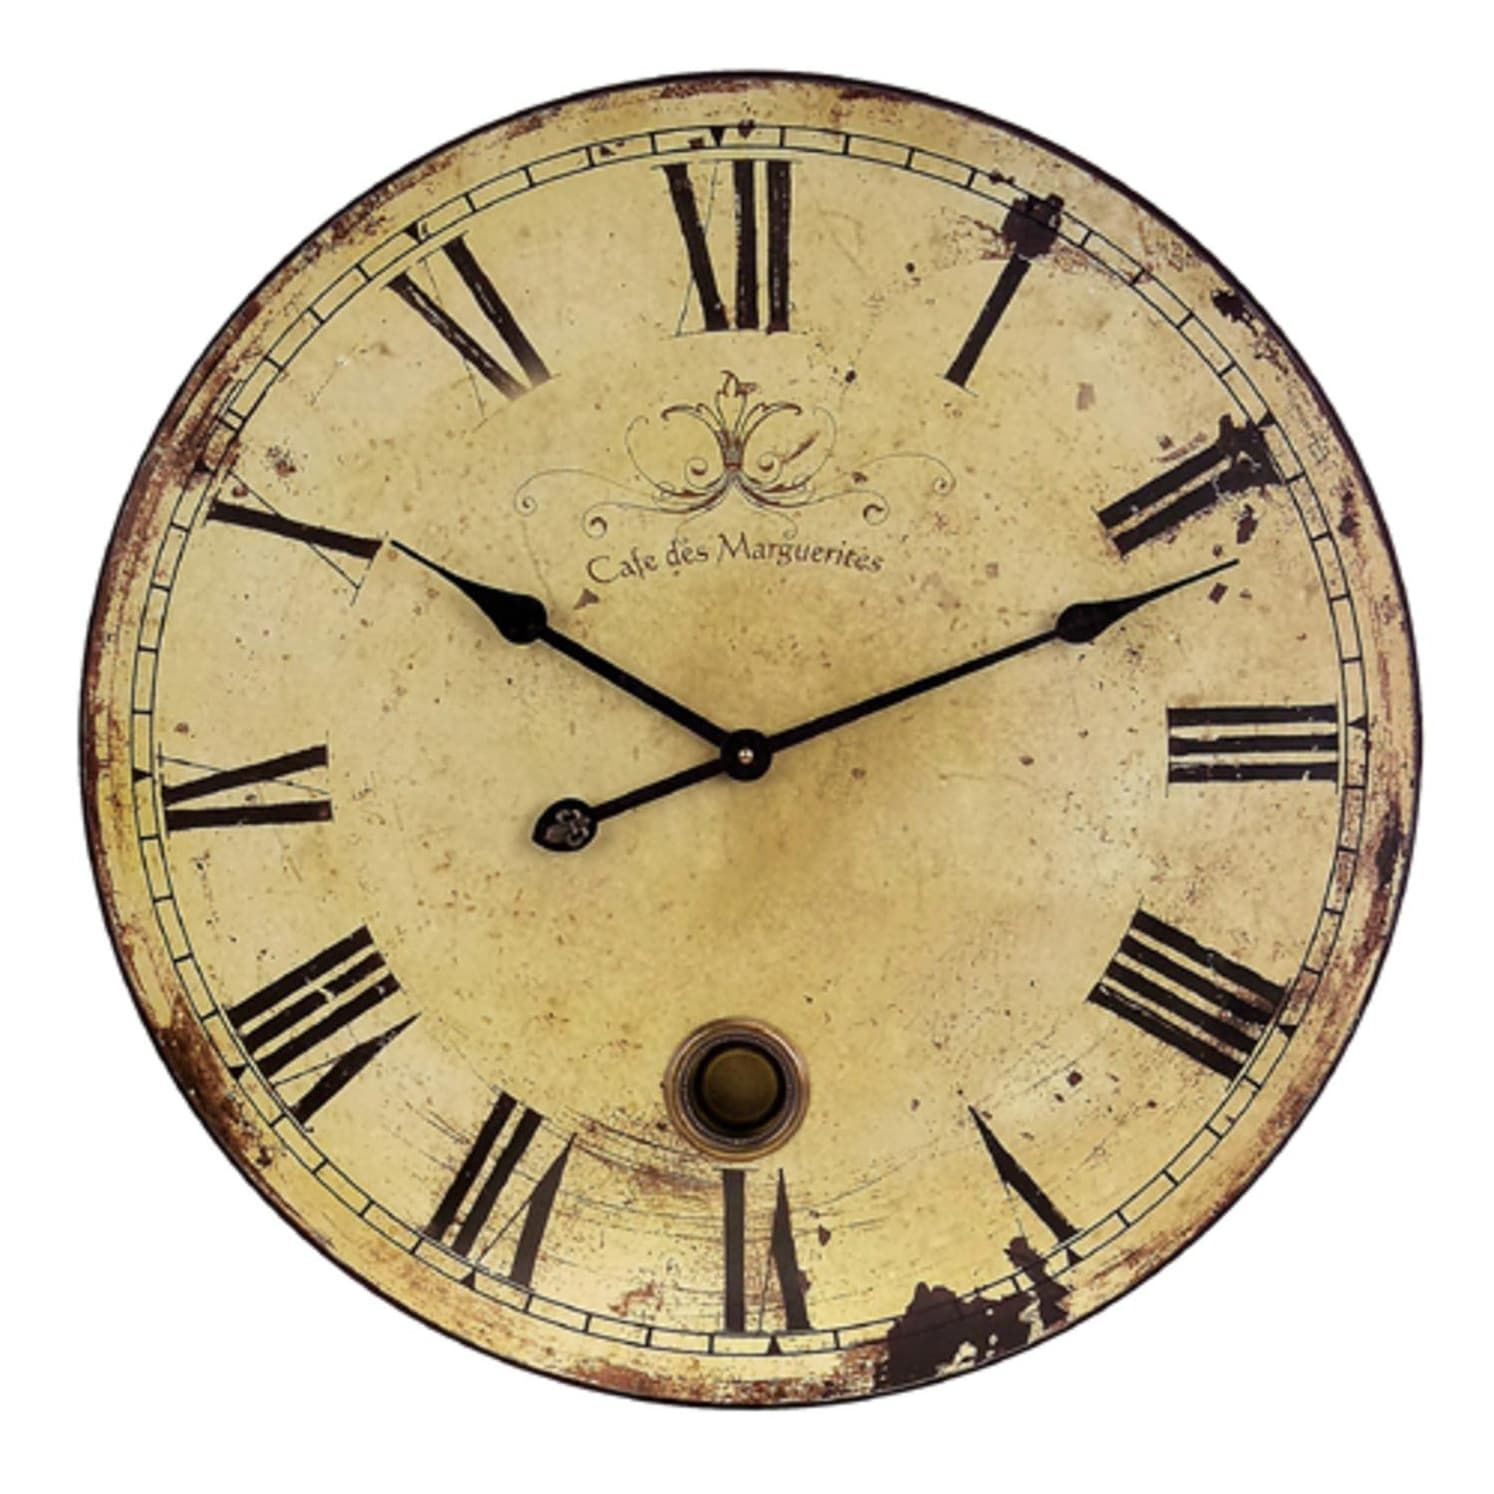 23 Trendy French Café Weathered Cream-Colored Large Wall Clock ...